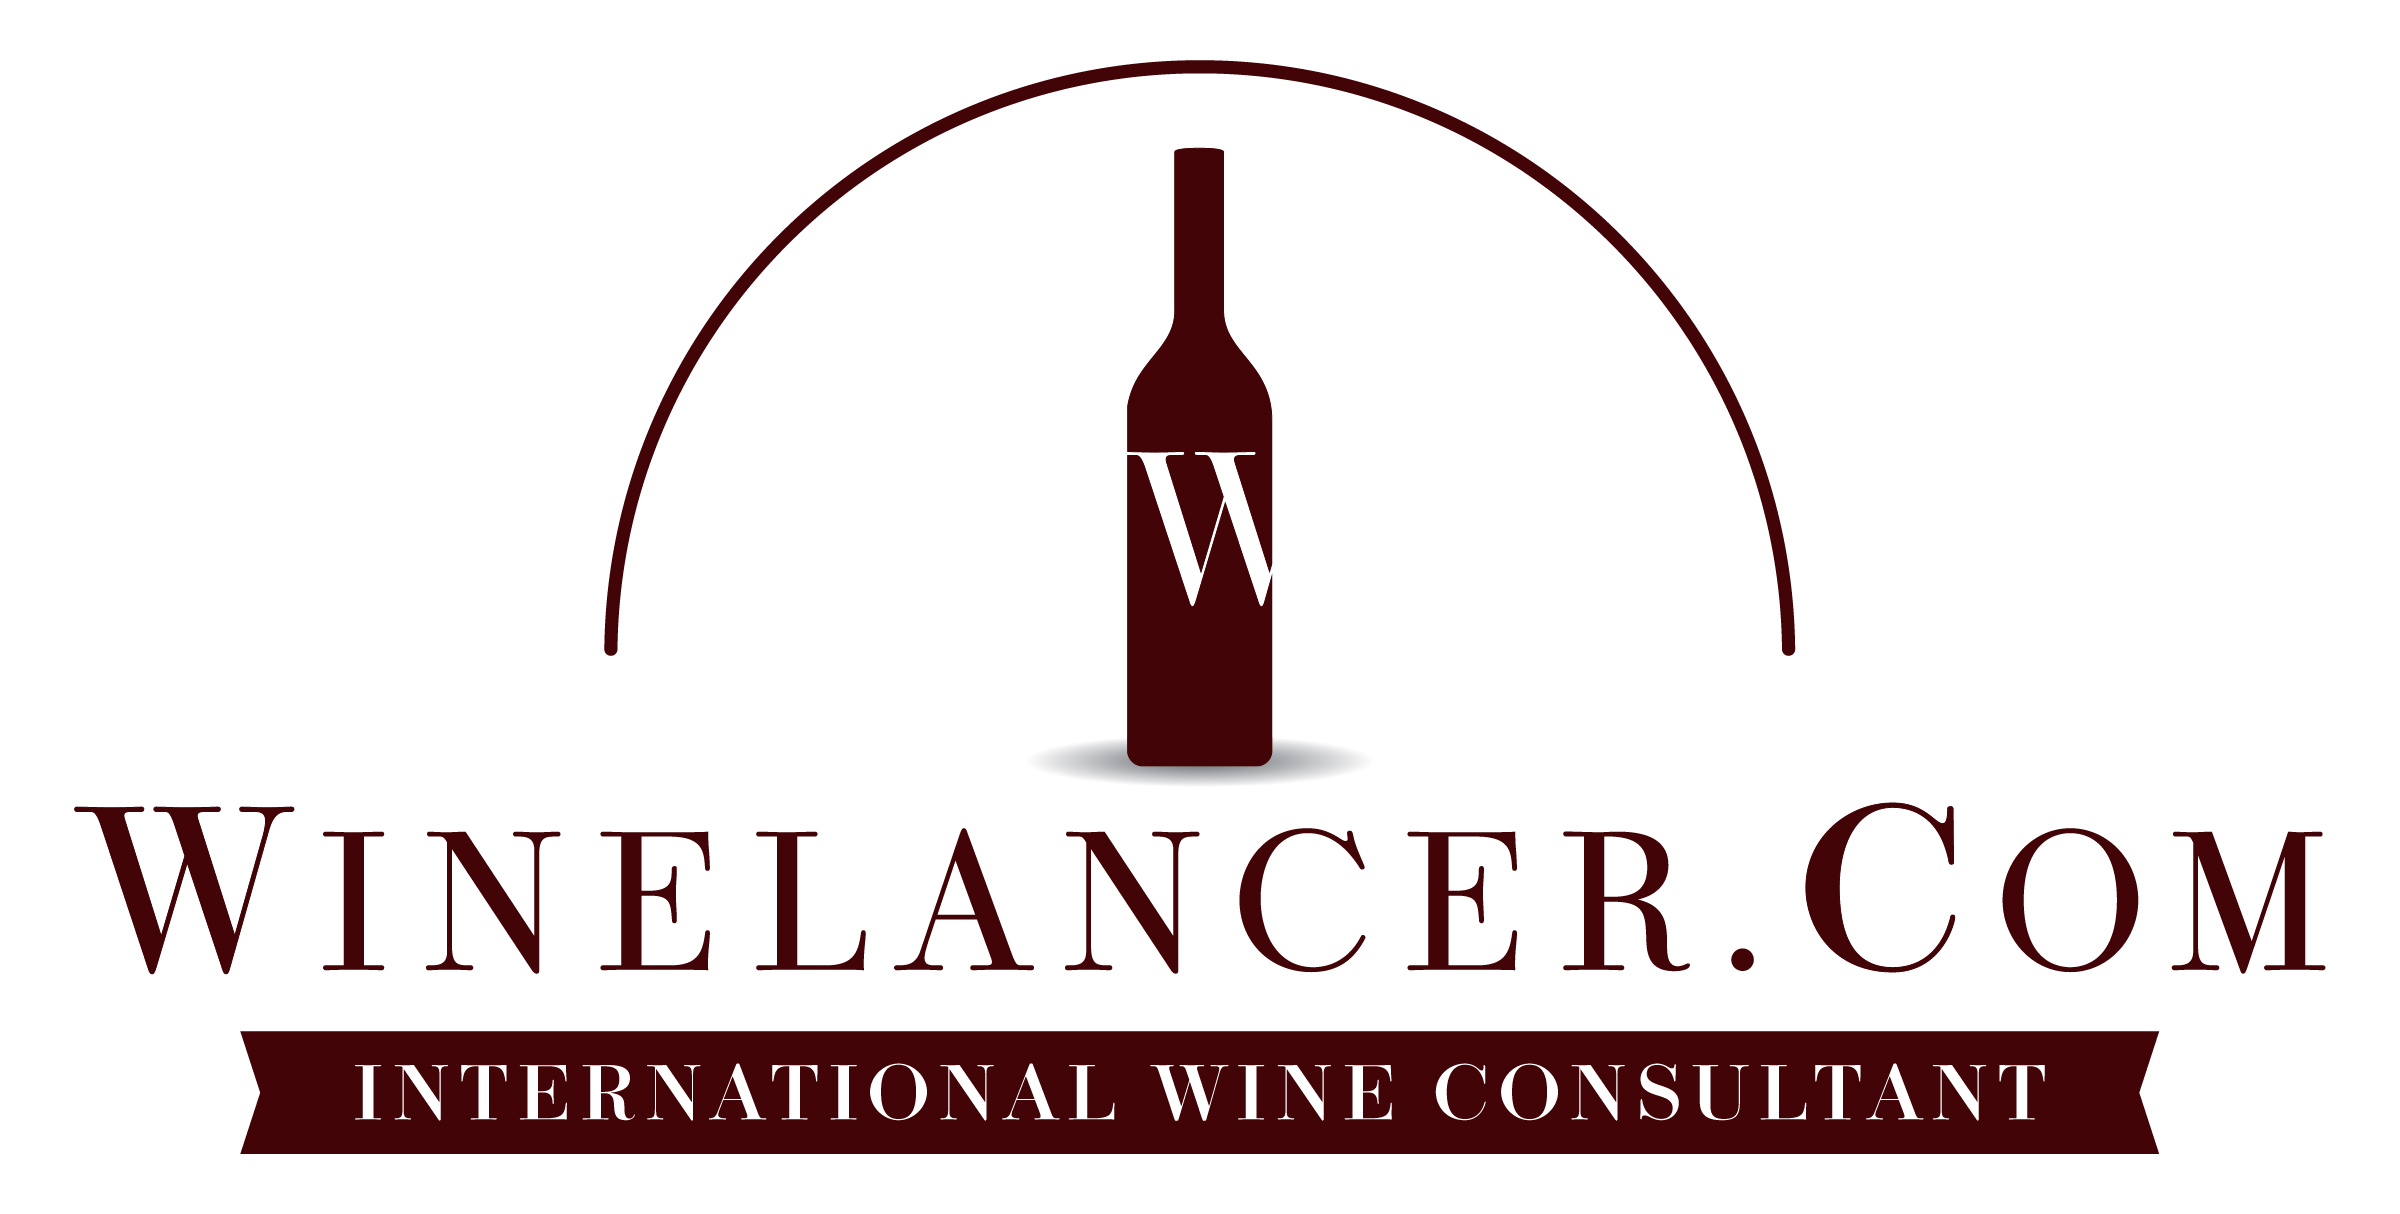 Winelancer.com